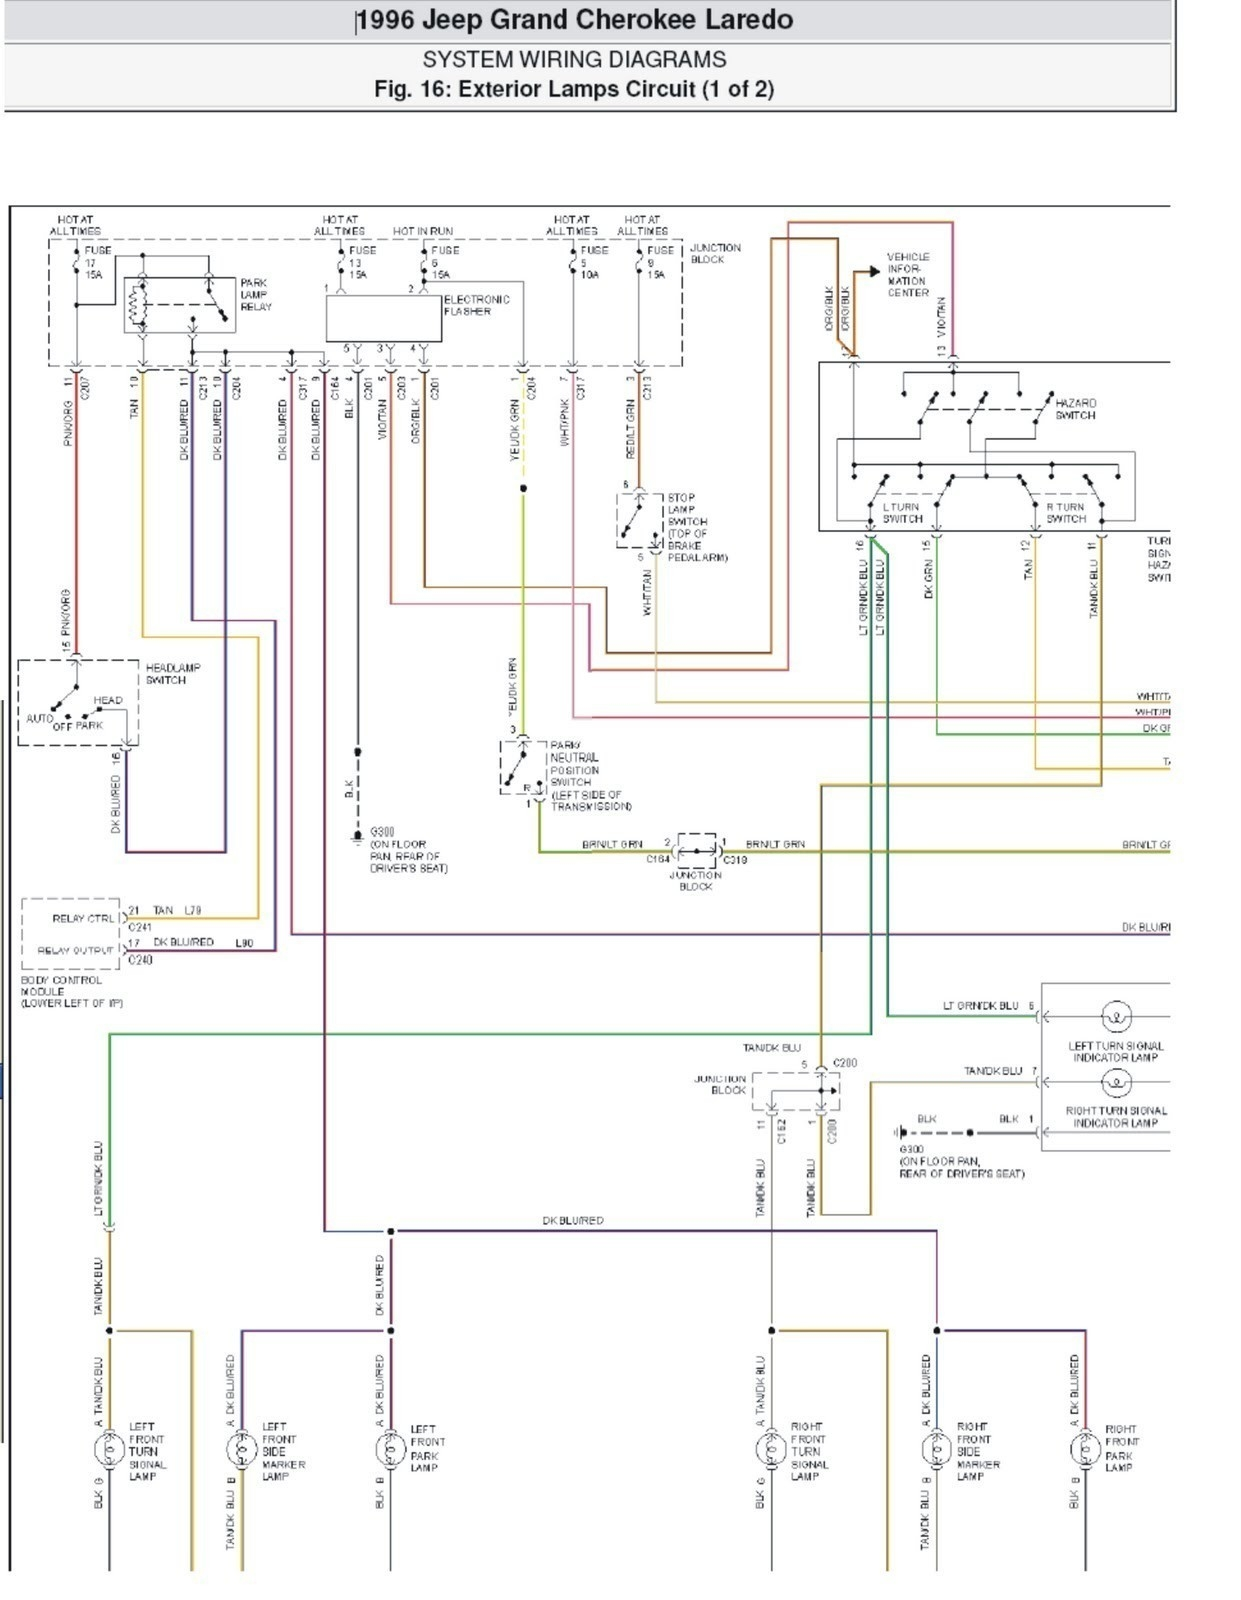 1996 jeep cherokee wiring diagram free - wiring diagram for a 1998 jeep  cherokee fresh a